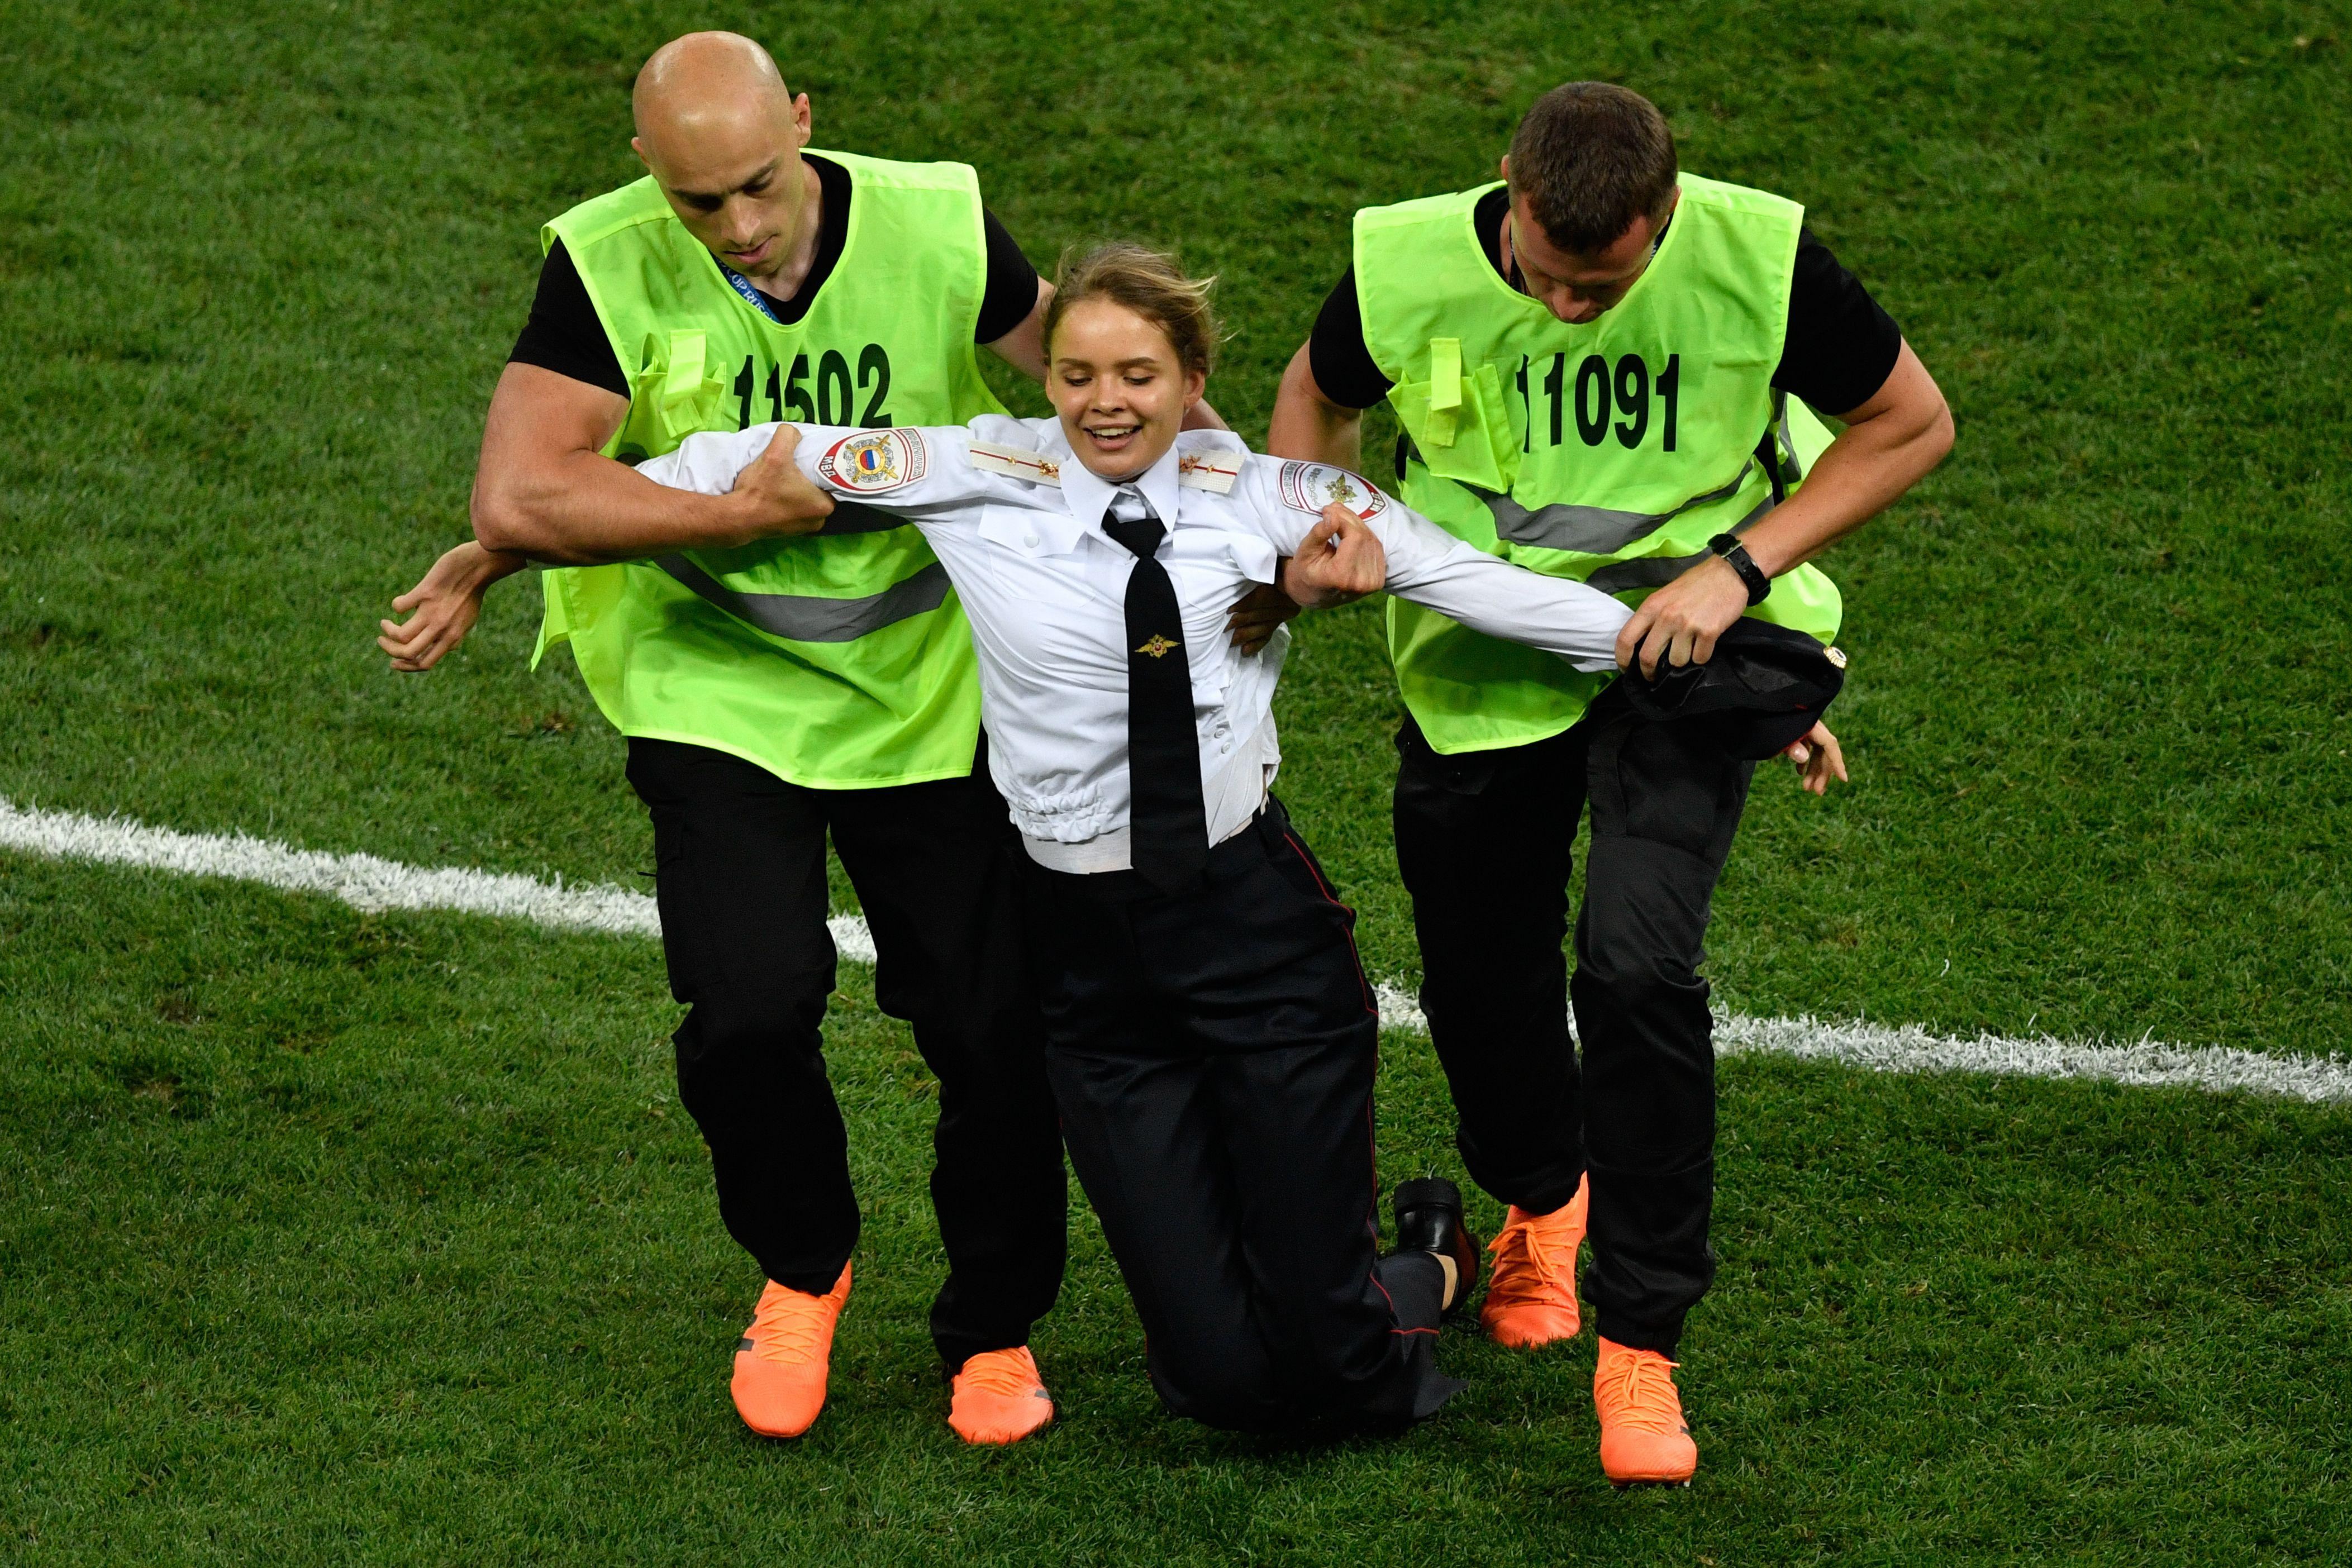 slate.com - Daniel Politi - Pussy Riot Claims Responsibility for Protest on the Field During World Cup Final